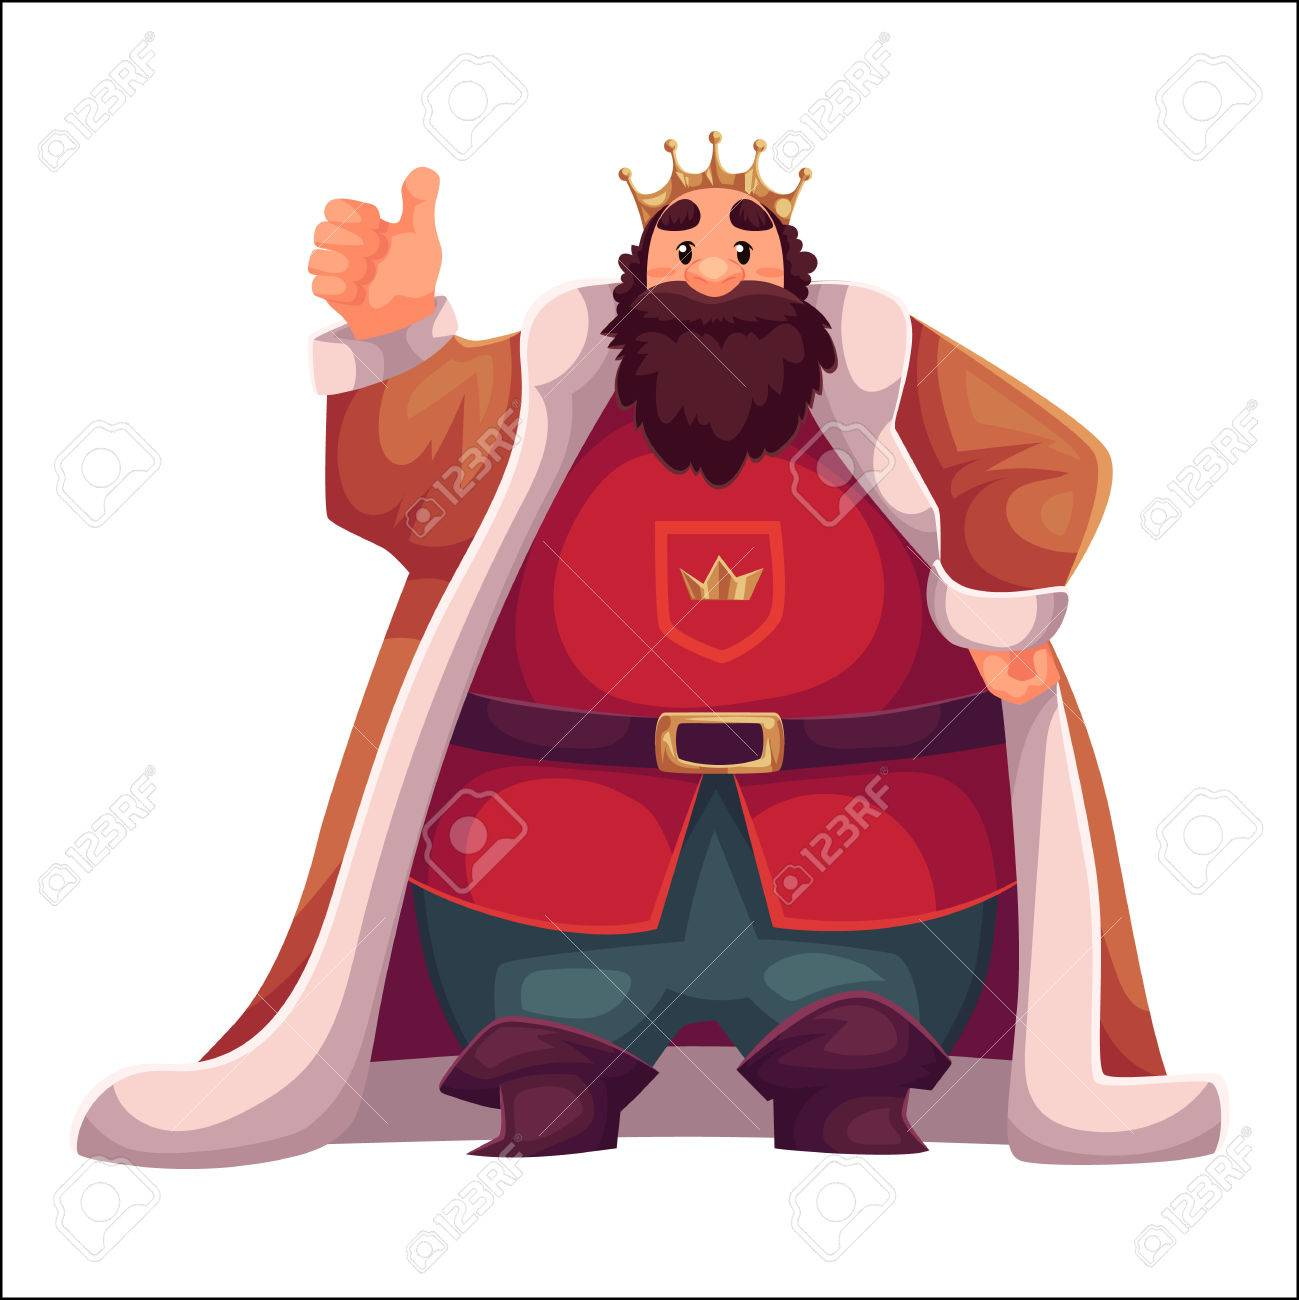 King Wearing Crown And Mantle Cartoon Vector Illustration Isolated Royalty Free Cliparts Vectors And Stock Illustration Image 63578775 460x460 cartoon heart wearing a crown (black amp white line art) by. king wearing crown and mantle cartoon vector illustration isolated